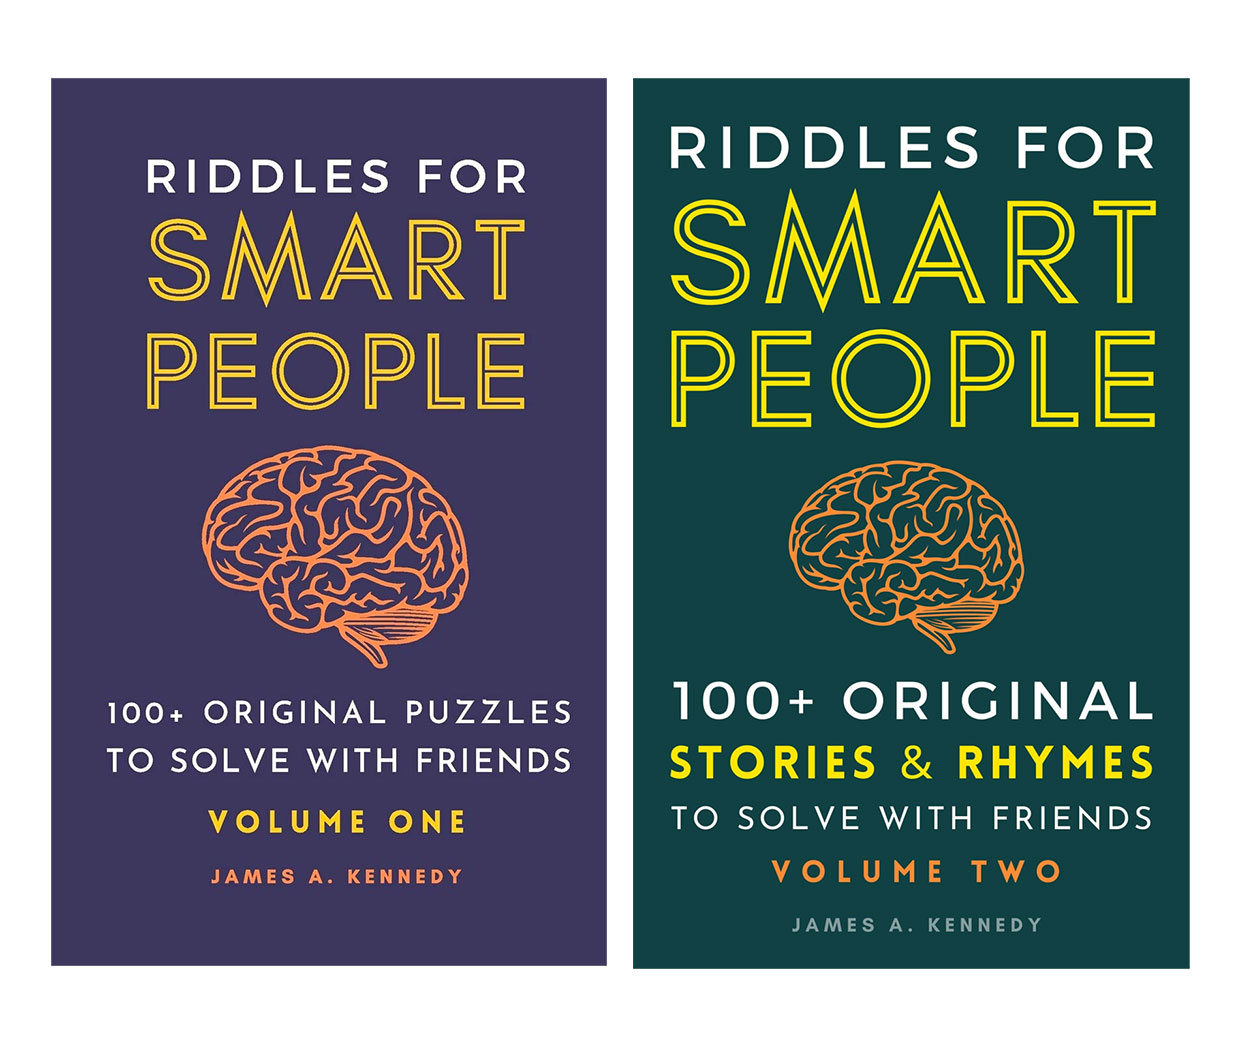 Riddles for Smart People